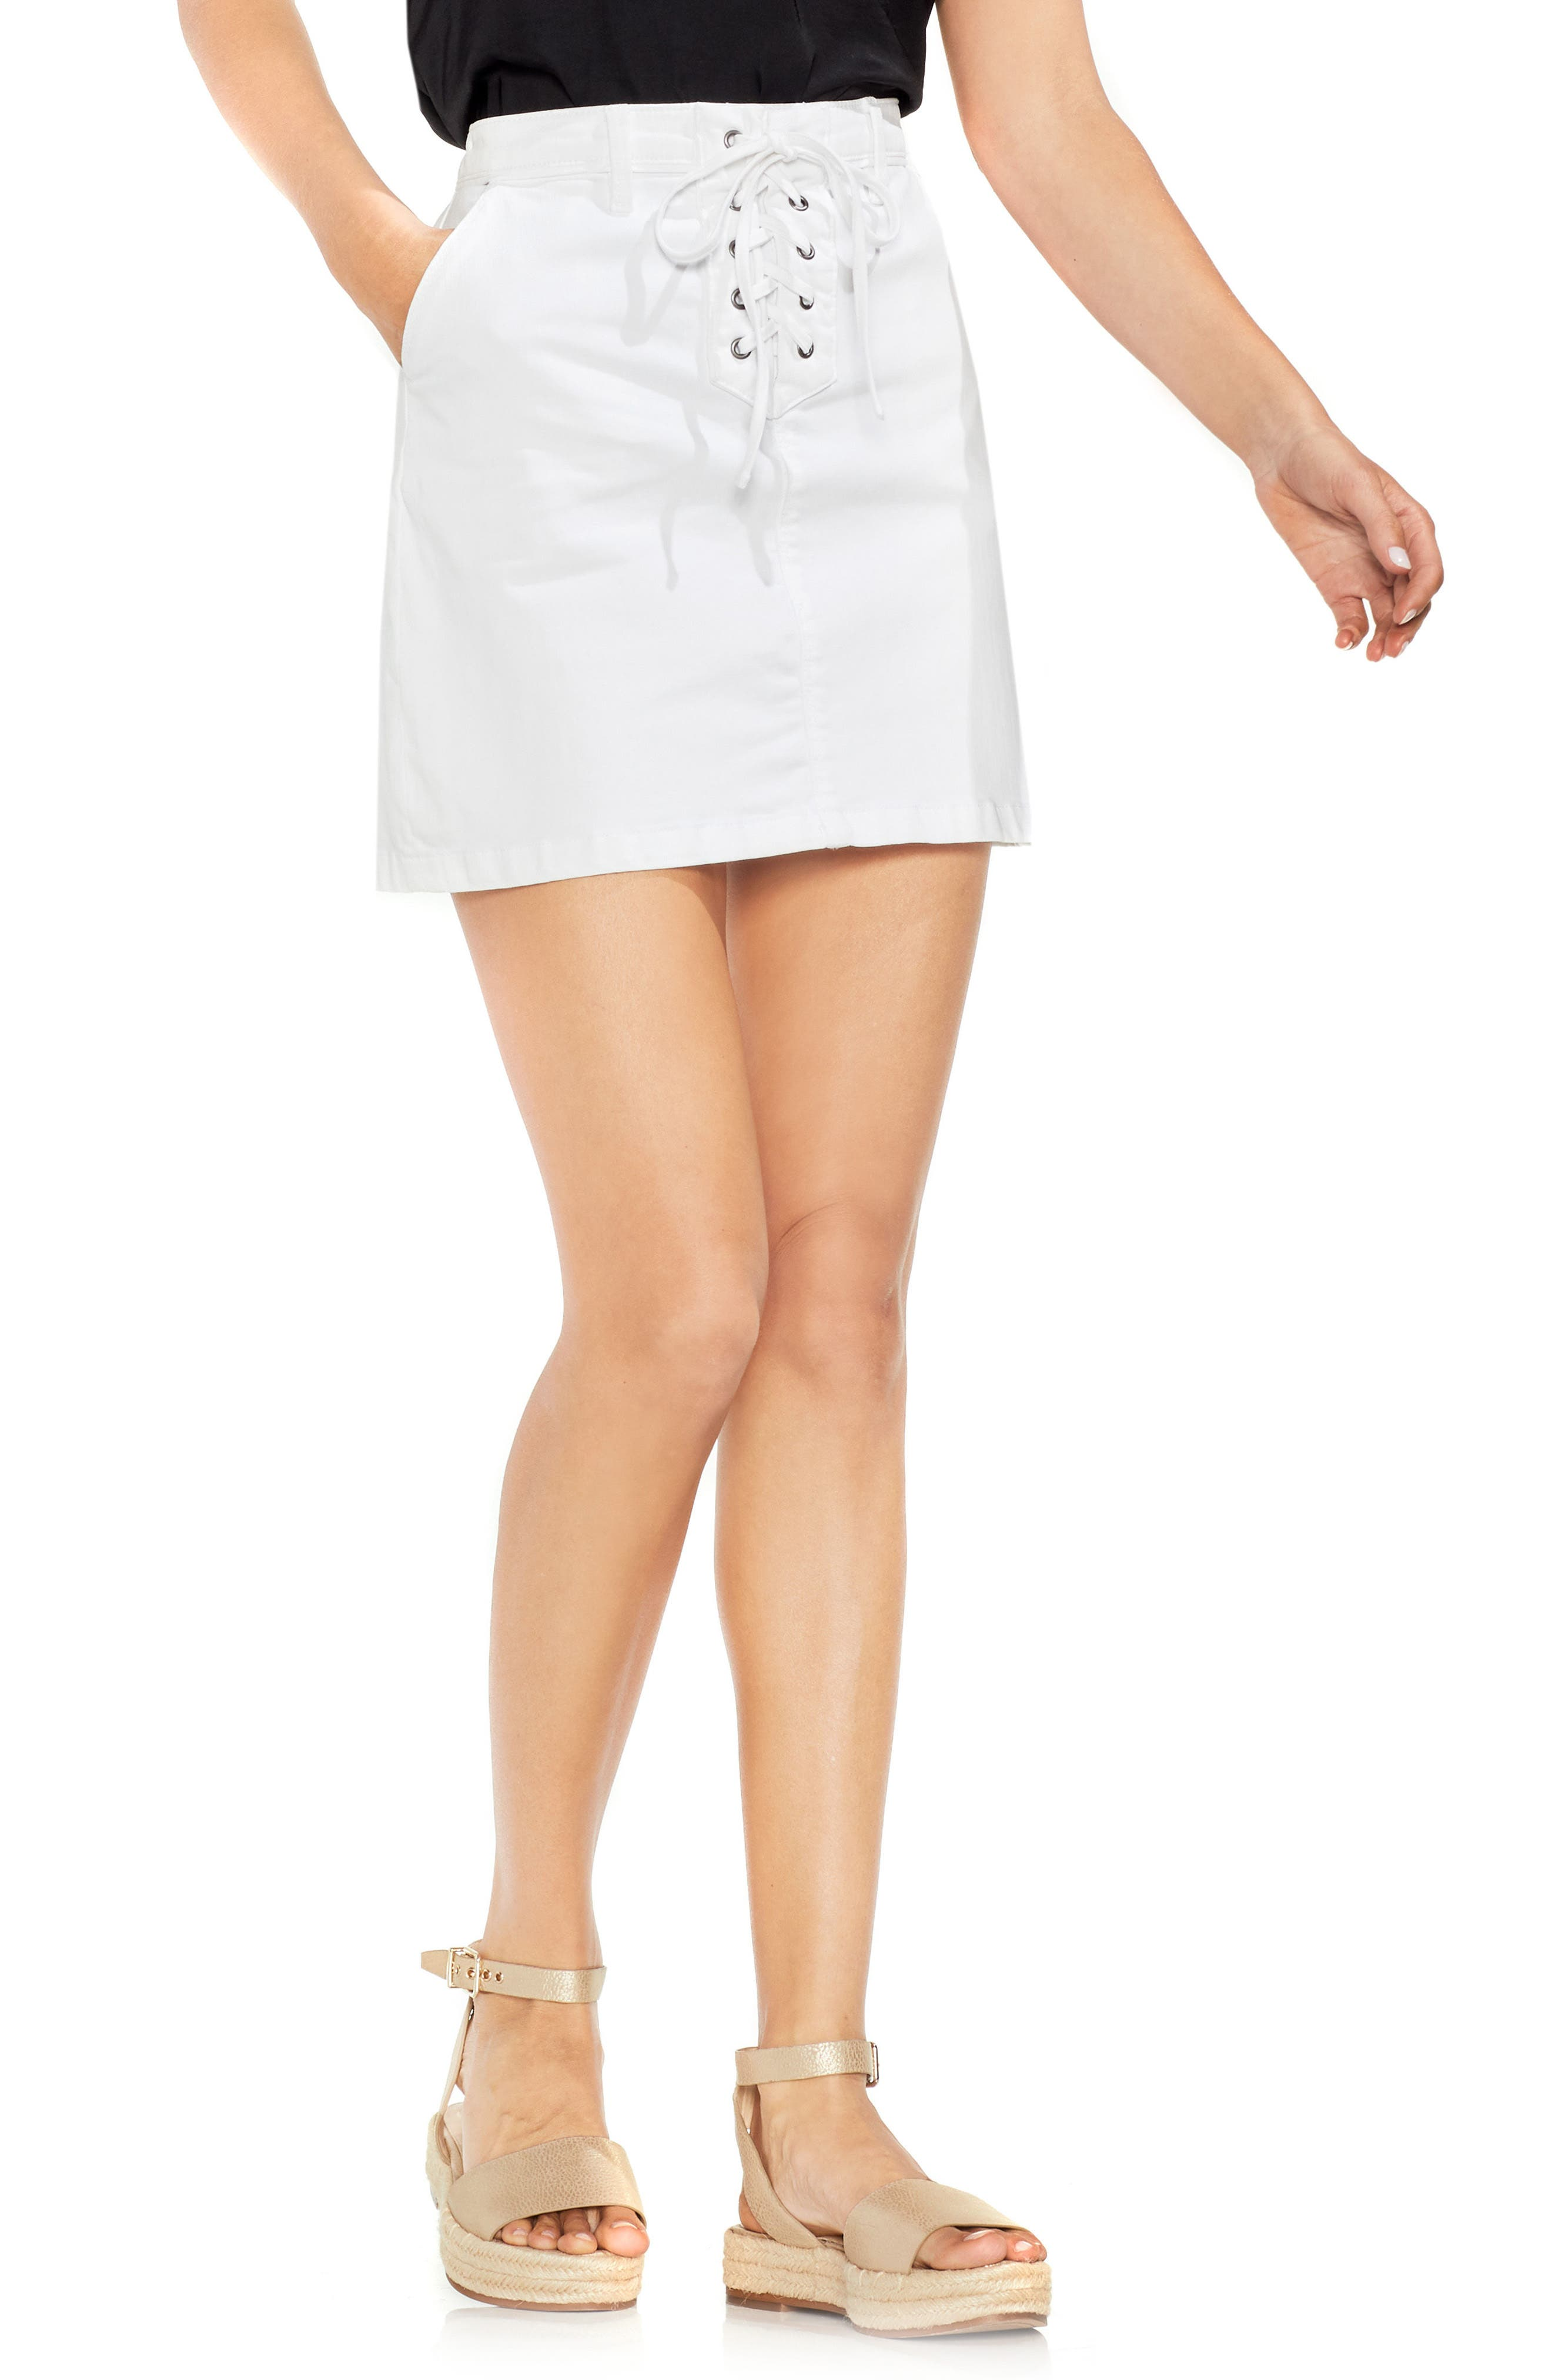 Vince Camuto Lace-Up Stretch Cotton Mini Skirt, 7 - White